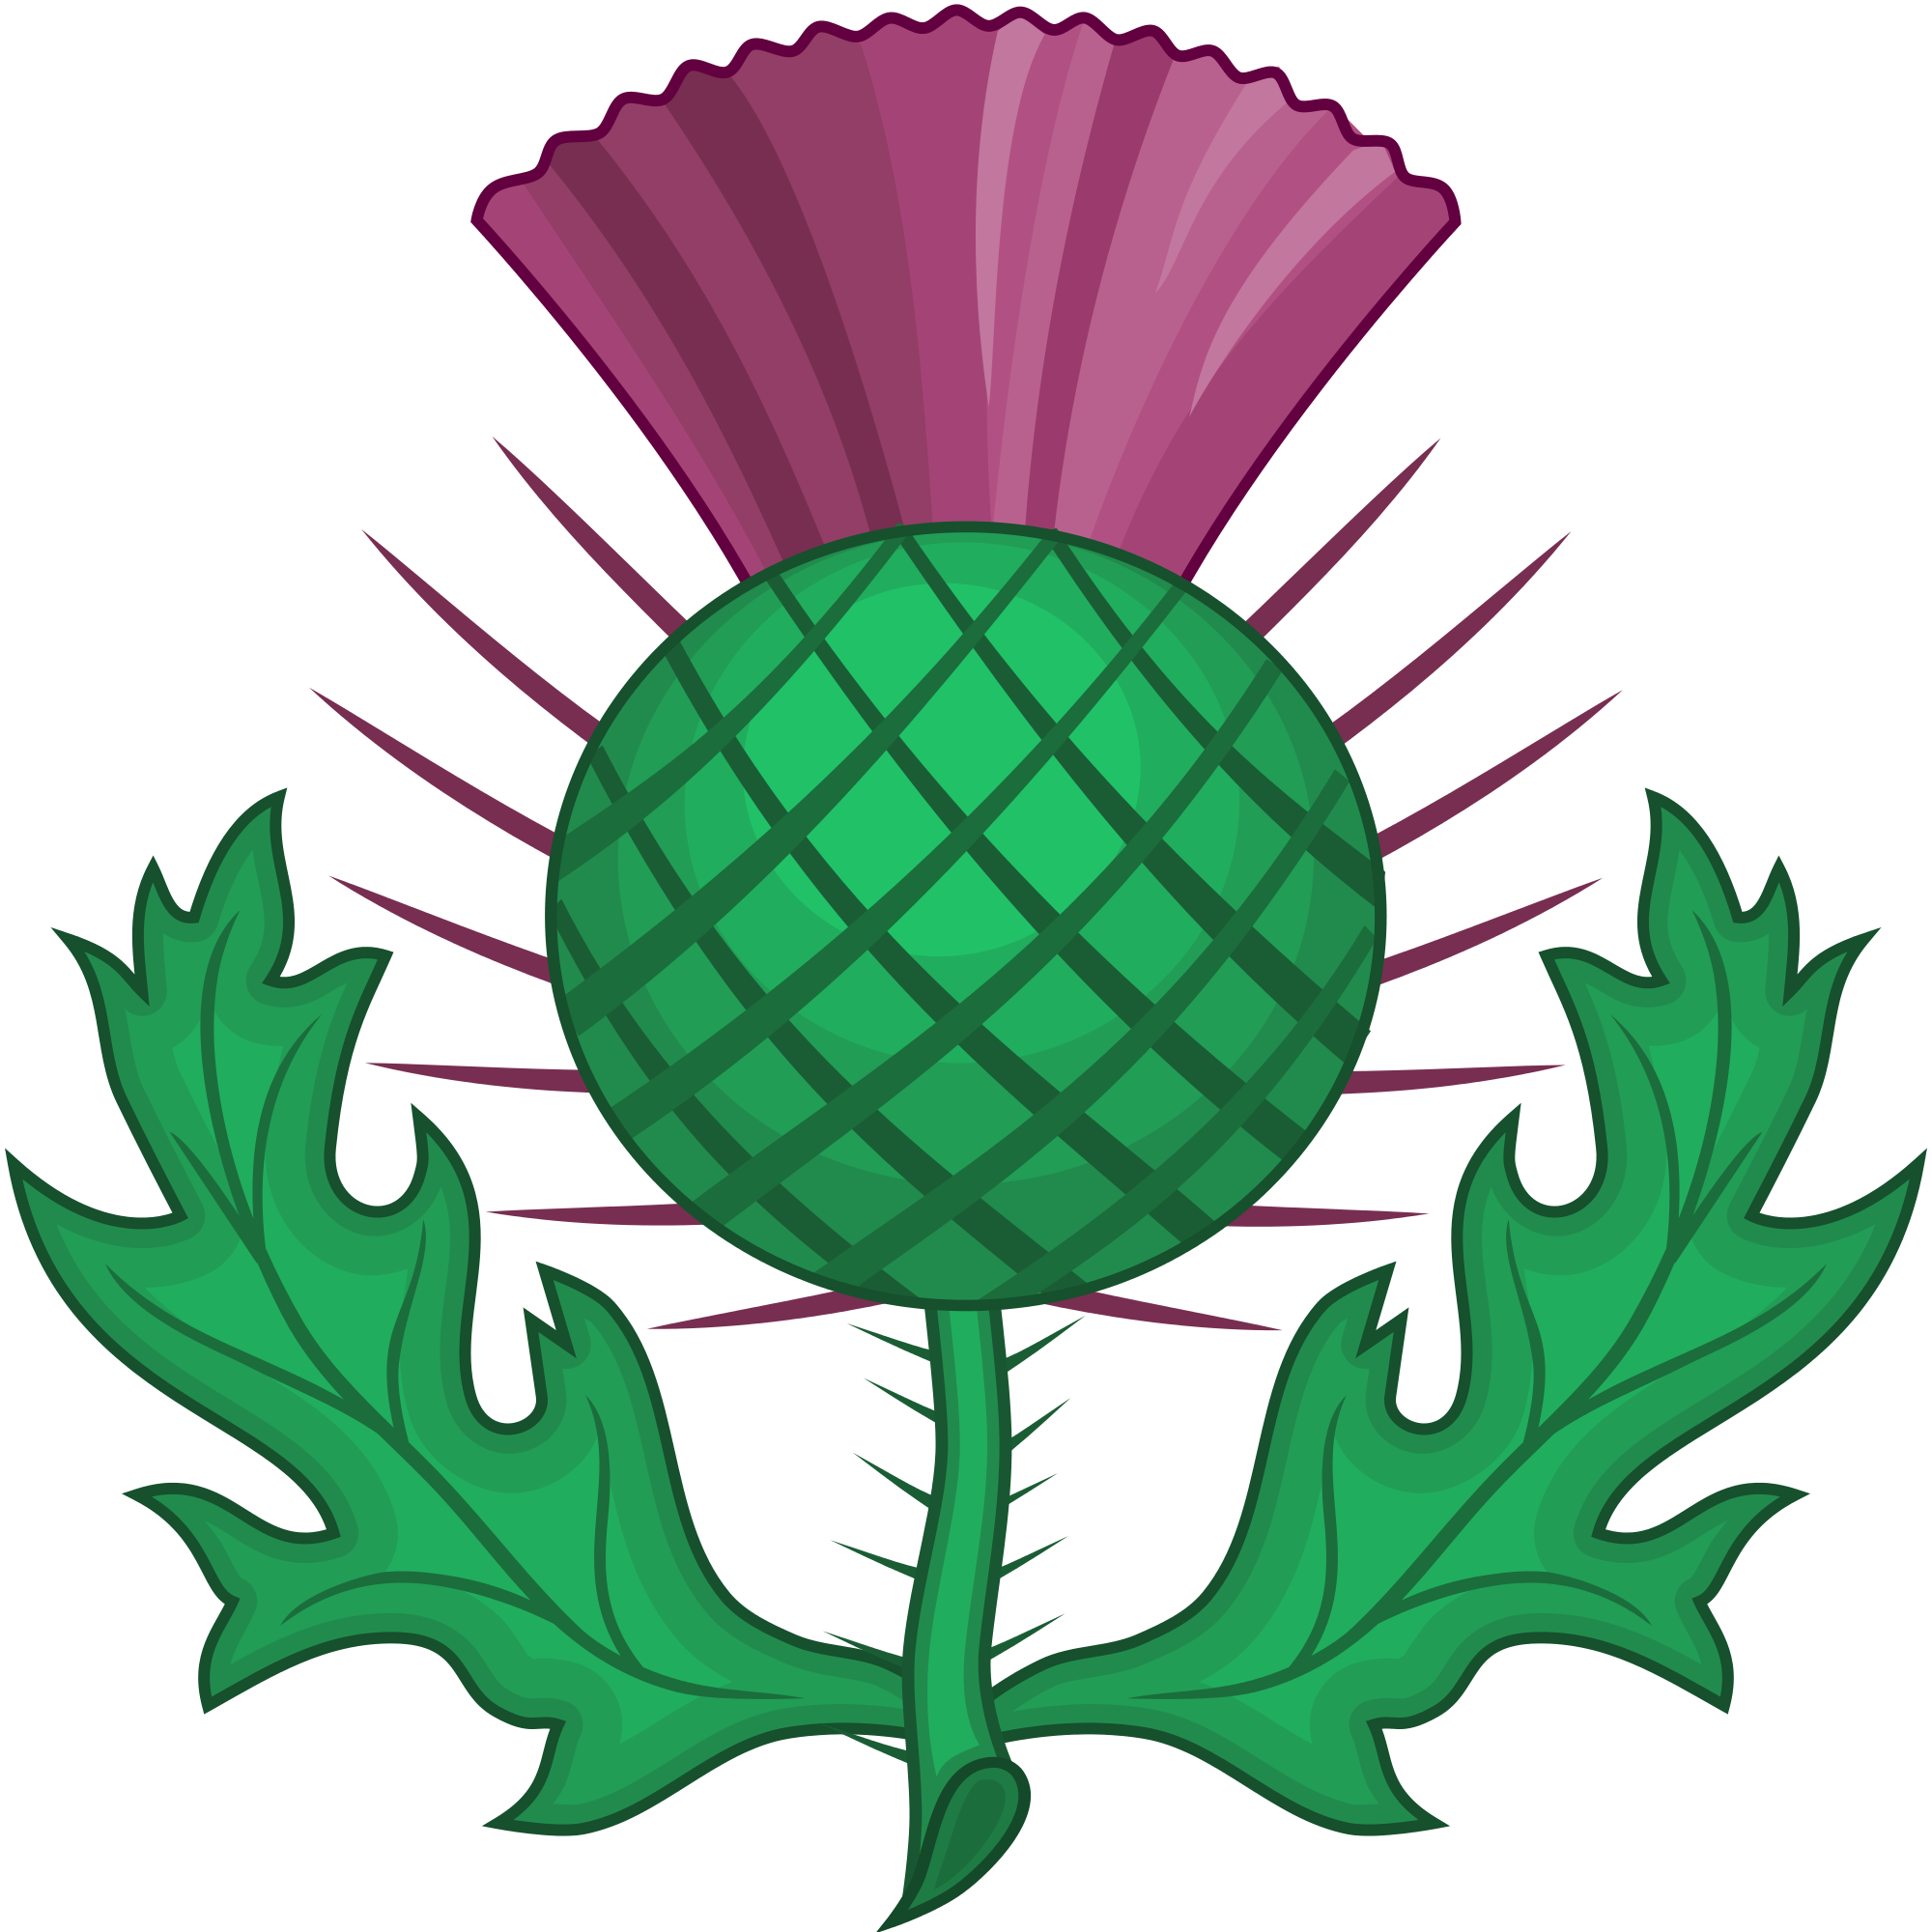 scottish thistle silhouette at getdrawings com free for personal rh getdrawings com scottish thistle clipart scottish thistle clipart